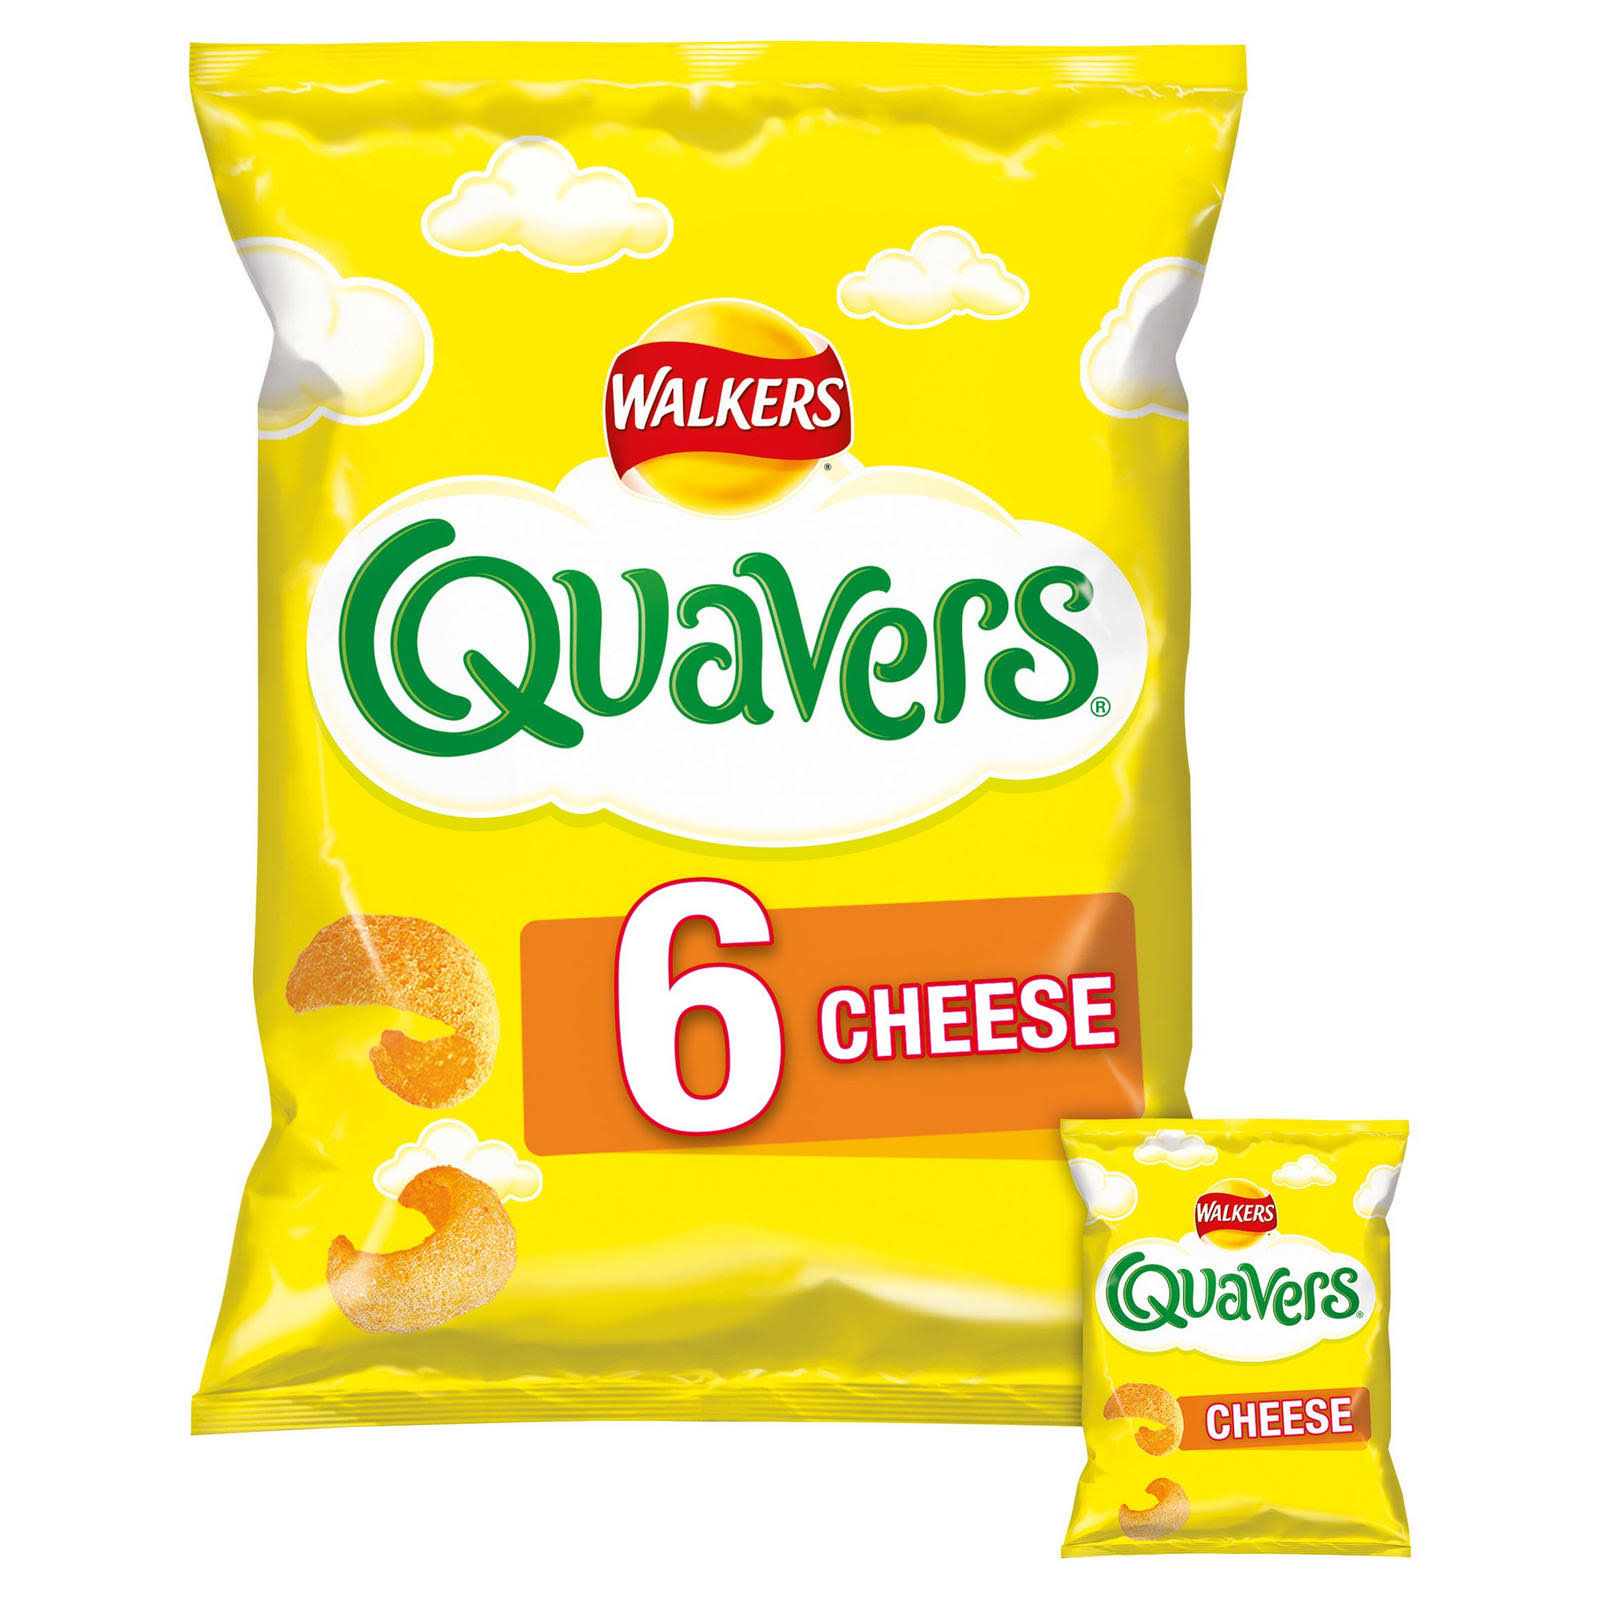 Walkers Quavers Snacks - Cheese, 6x16g